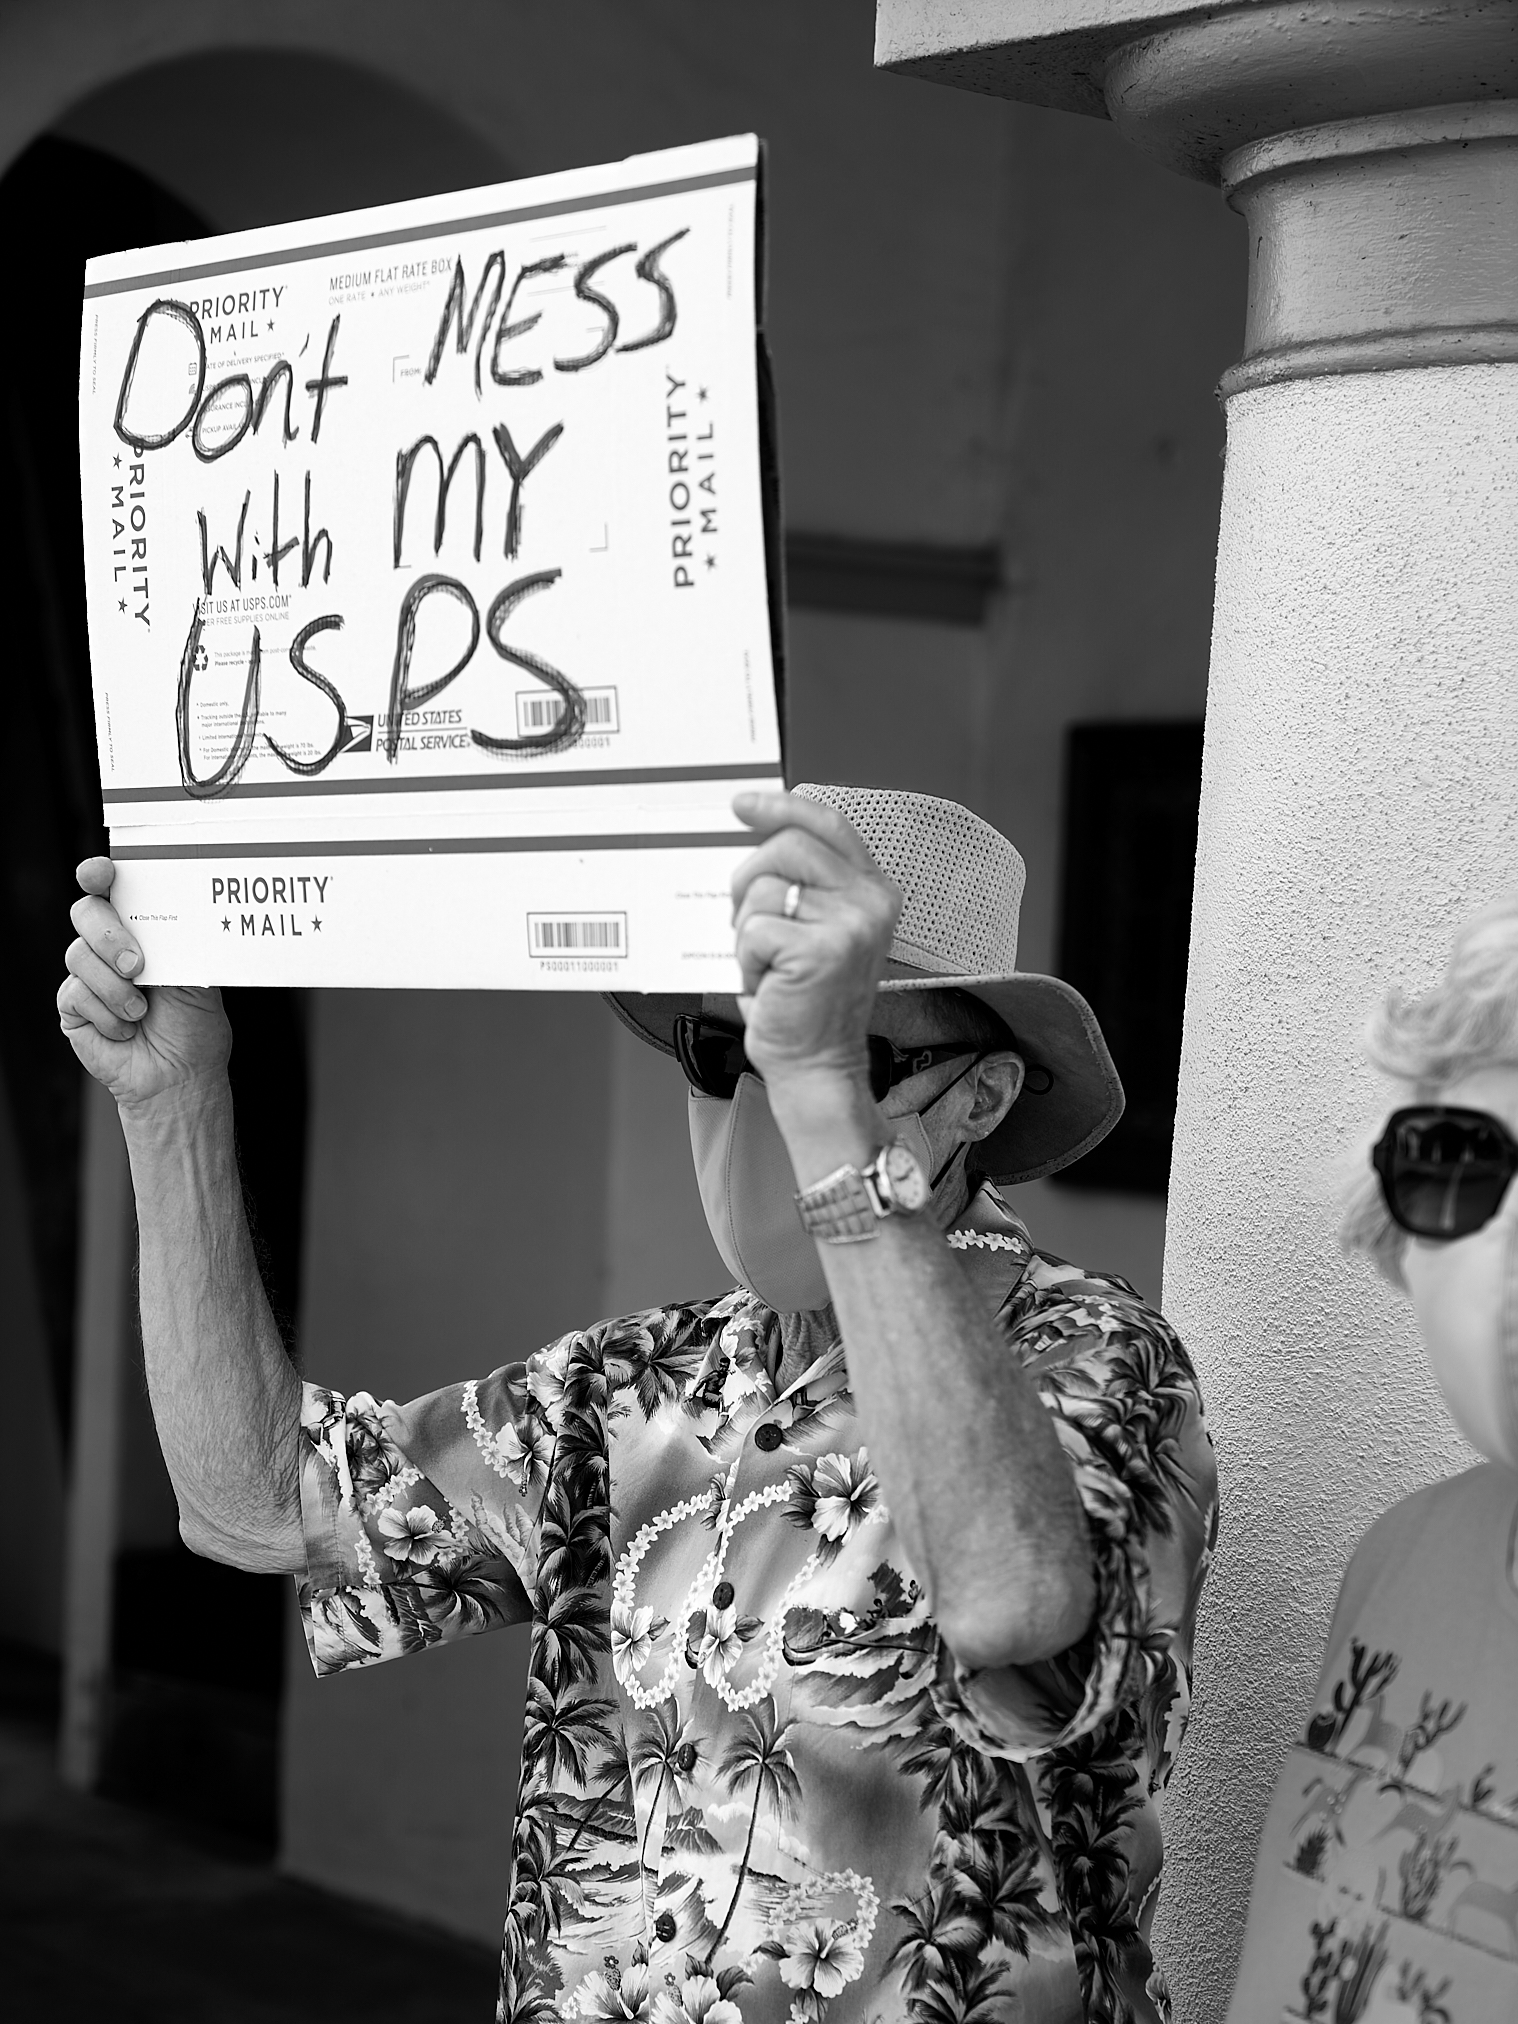 USPS Protest. 2020 Presidential Election, Post Office, political, protest, protest rally.